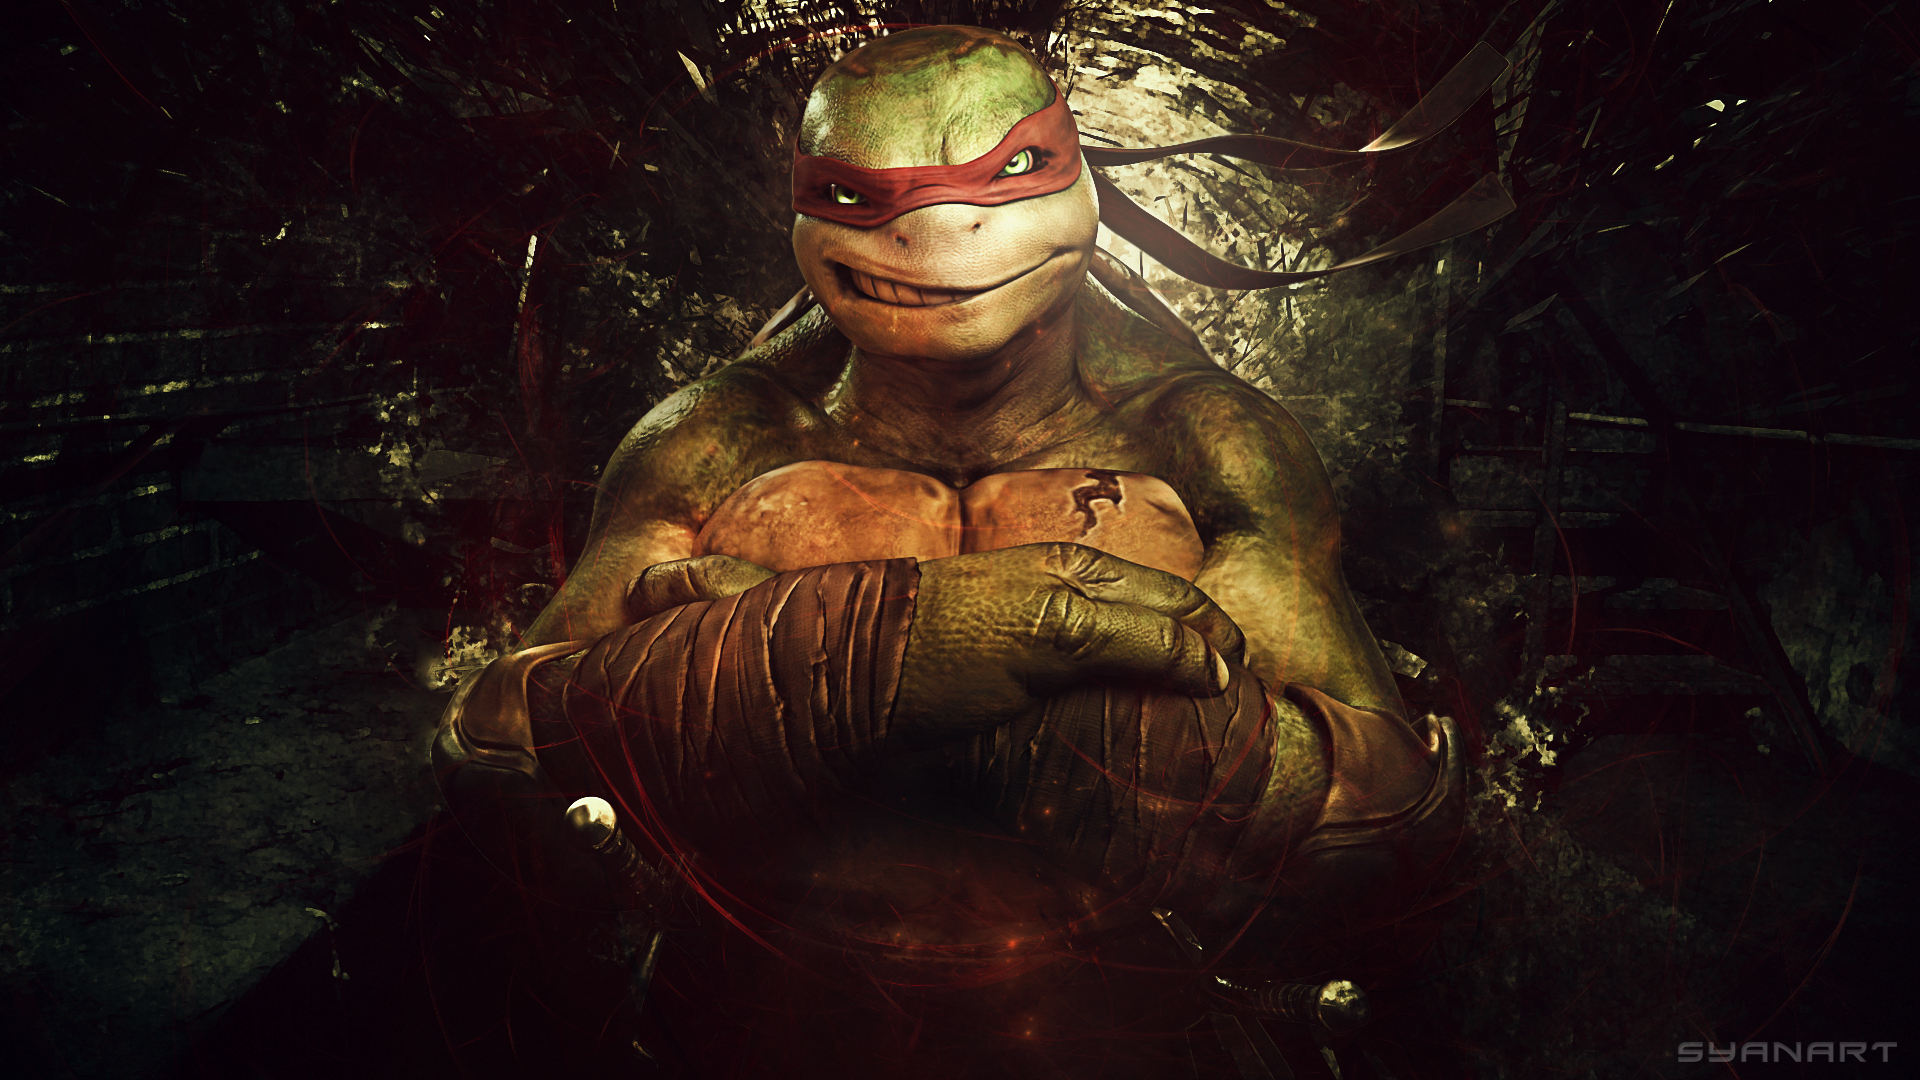 Raphael ninja turtles art